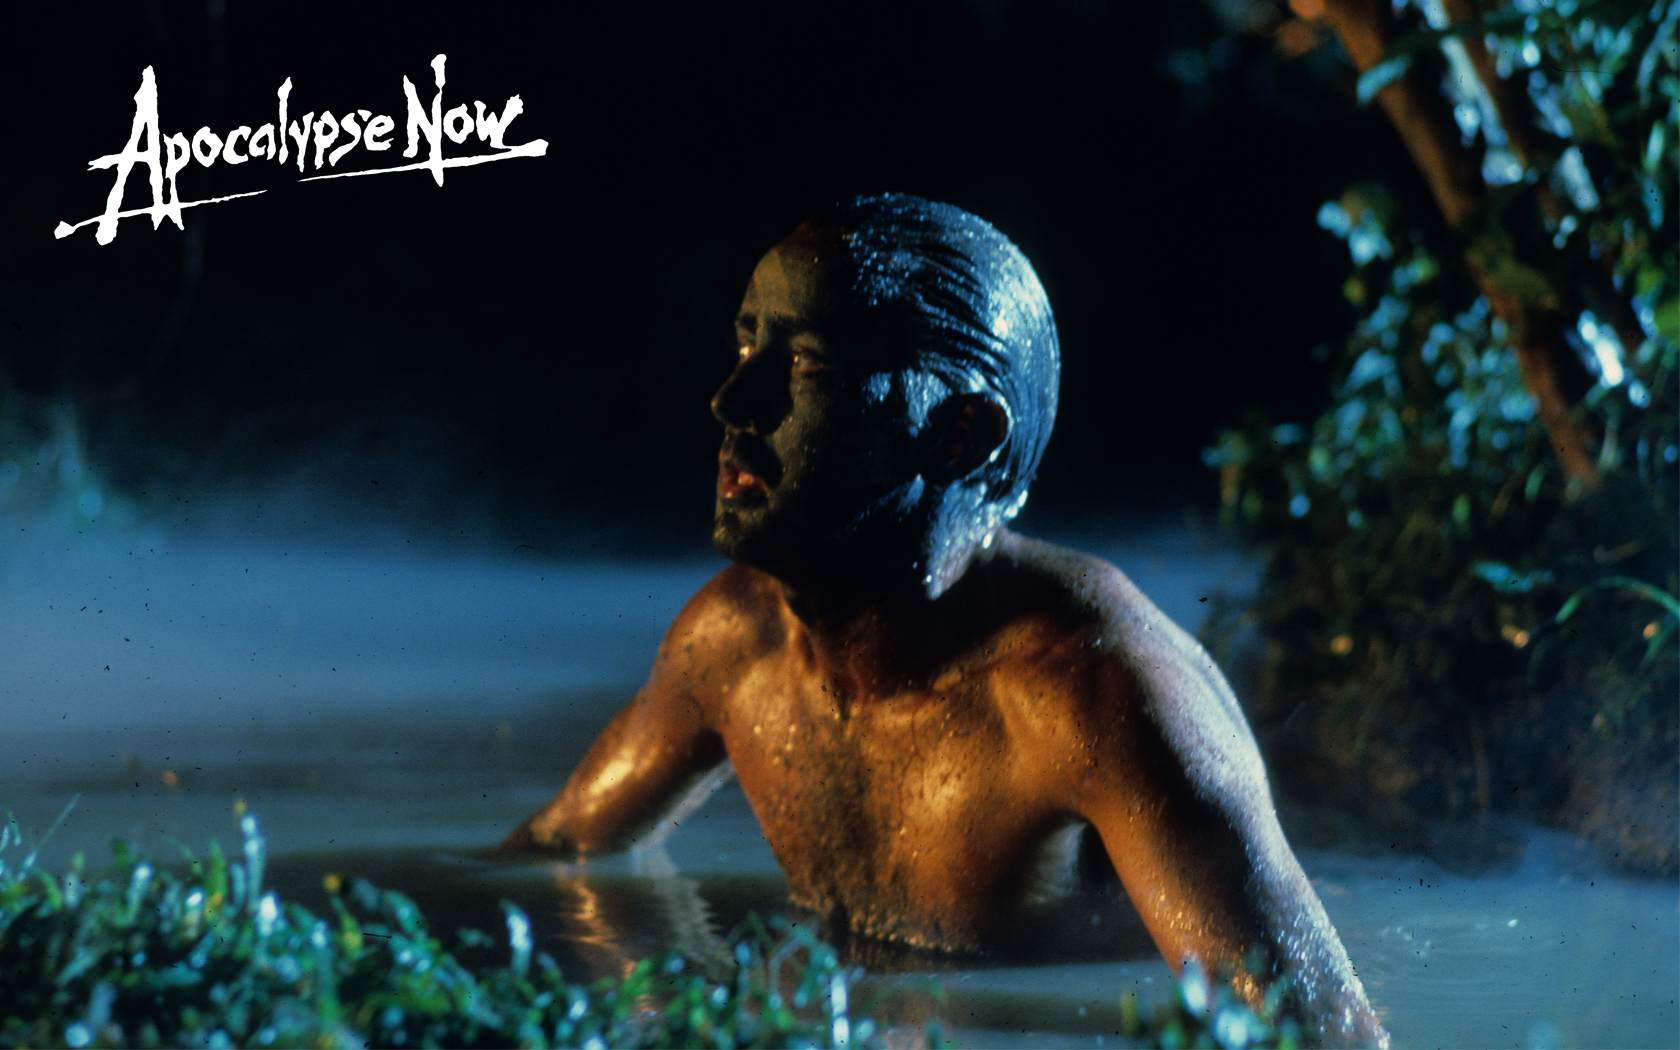 Pin Apocalypse Now Wallpapers 34915jpg 1680x1050